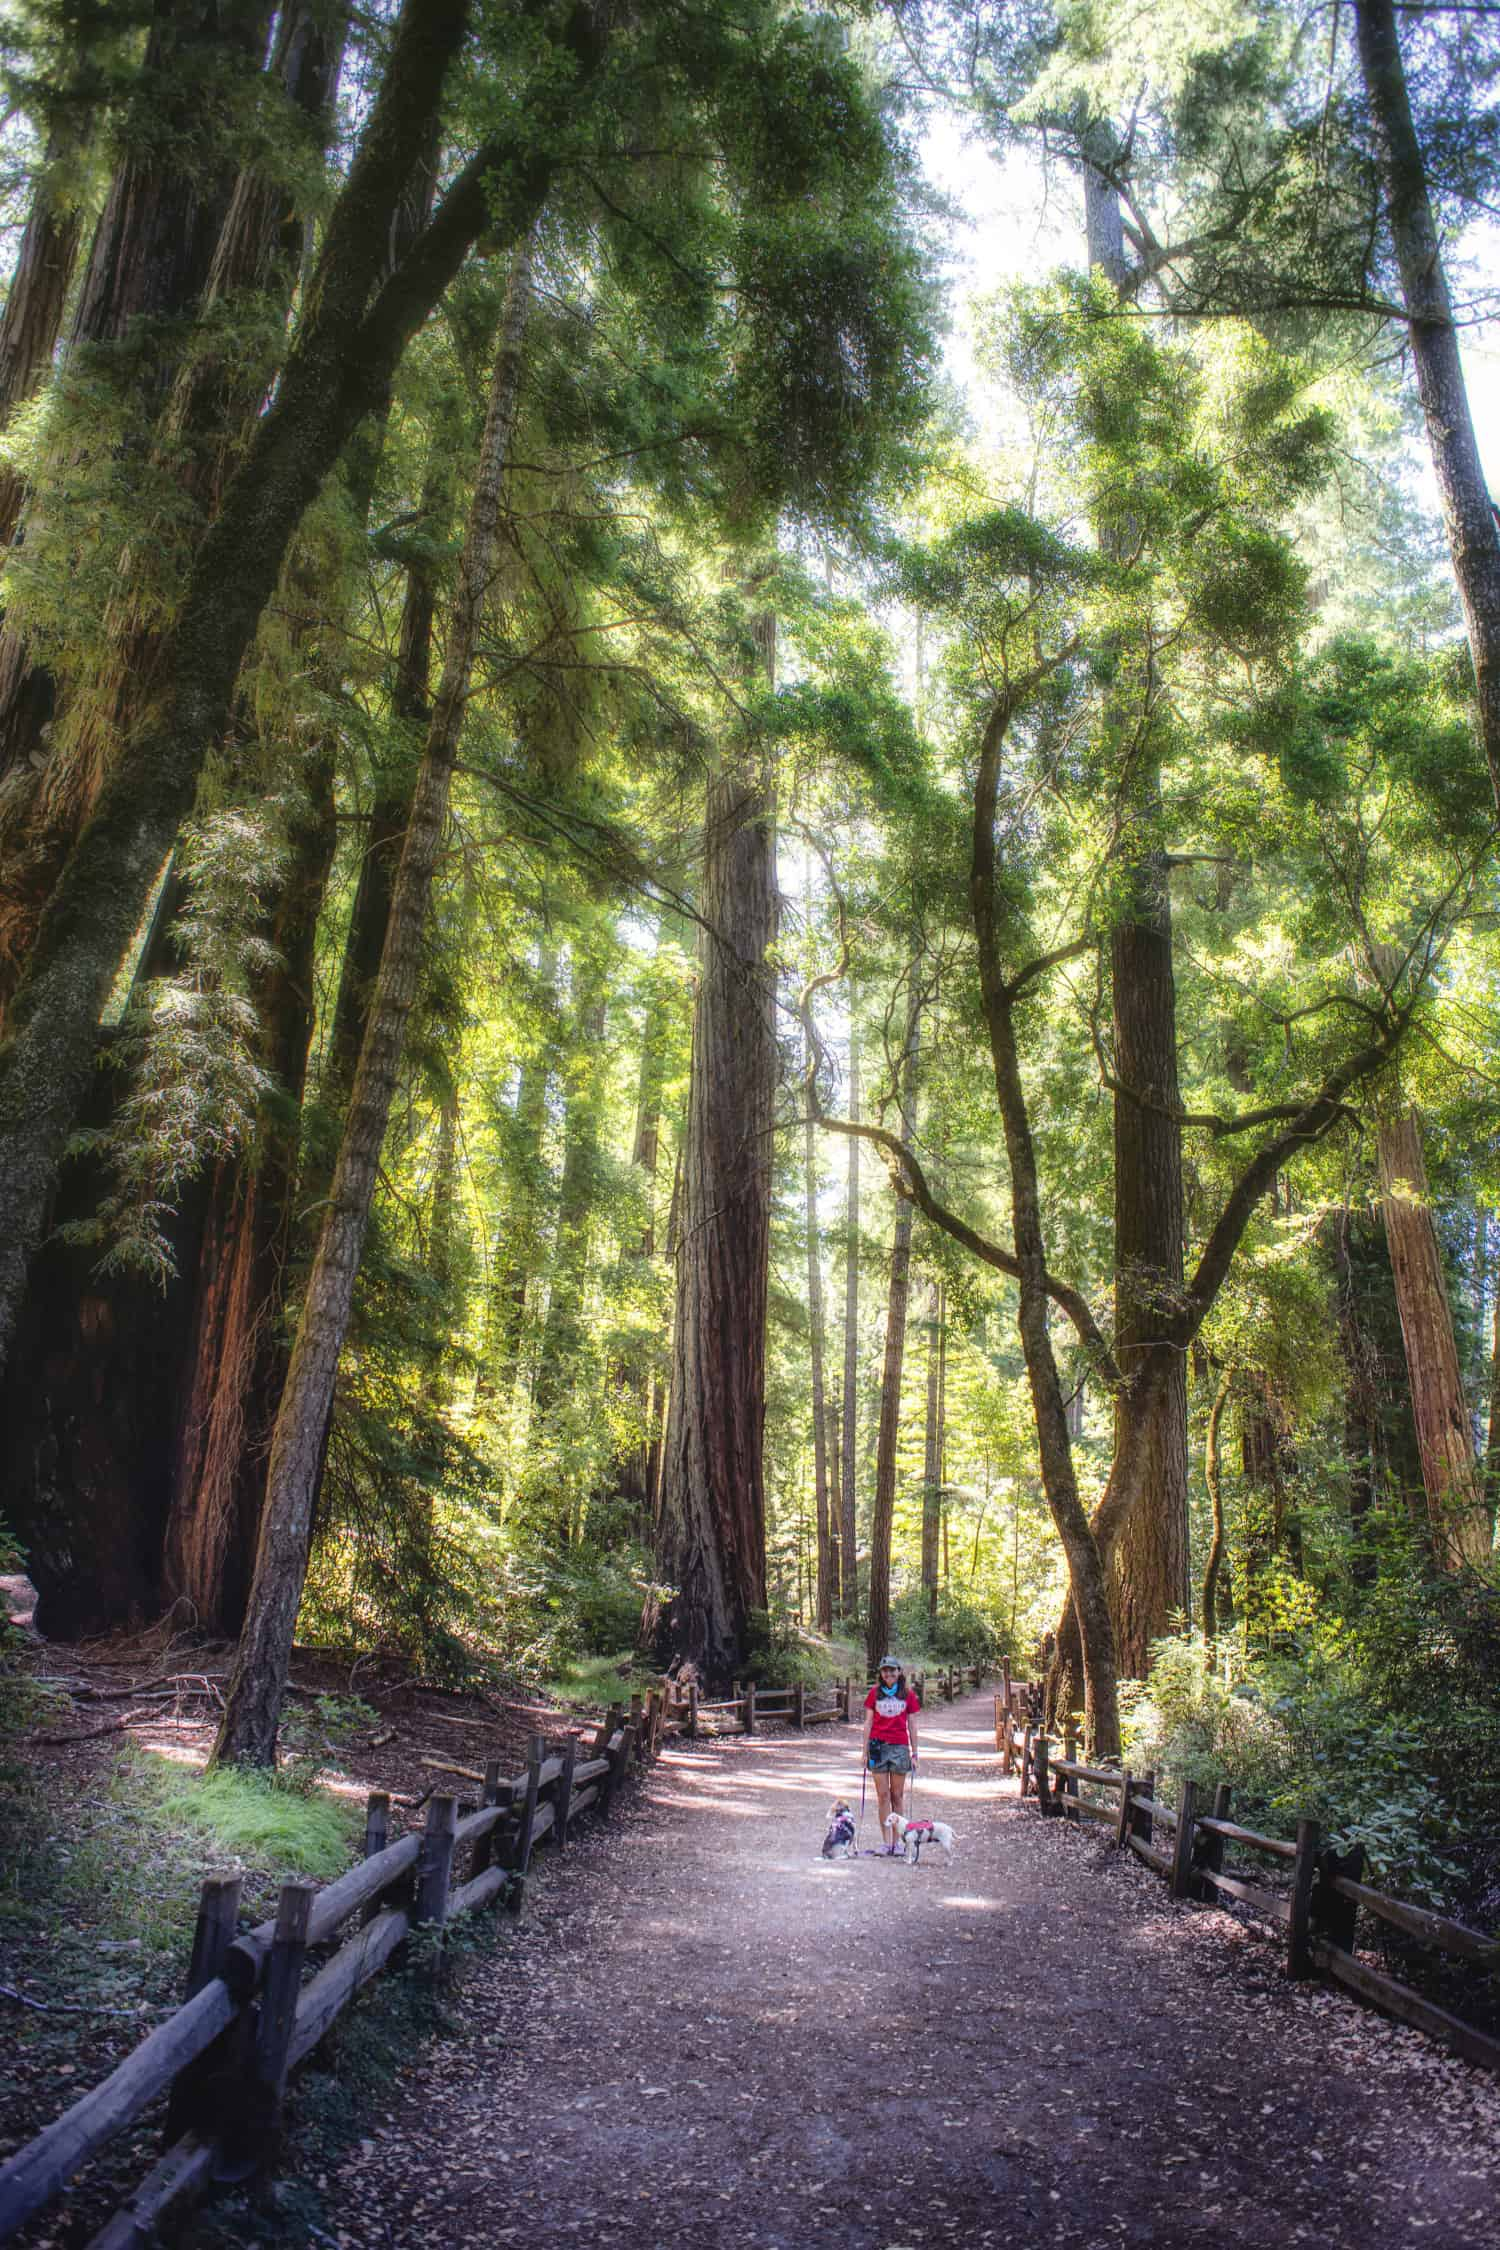 A woman and two dogs walking down a pet friendly trail surrounded by massive redwood trees